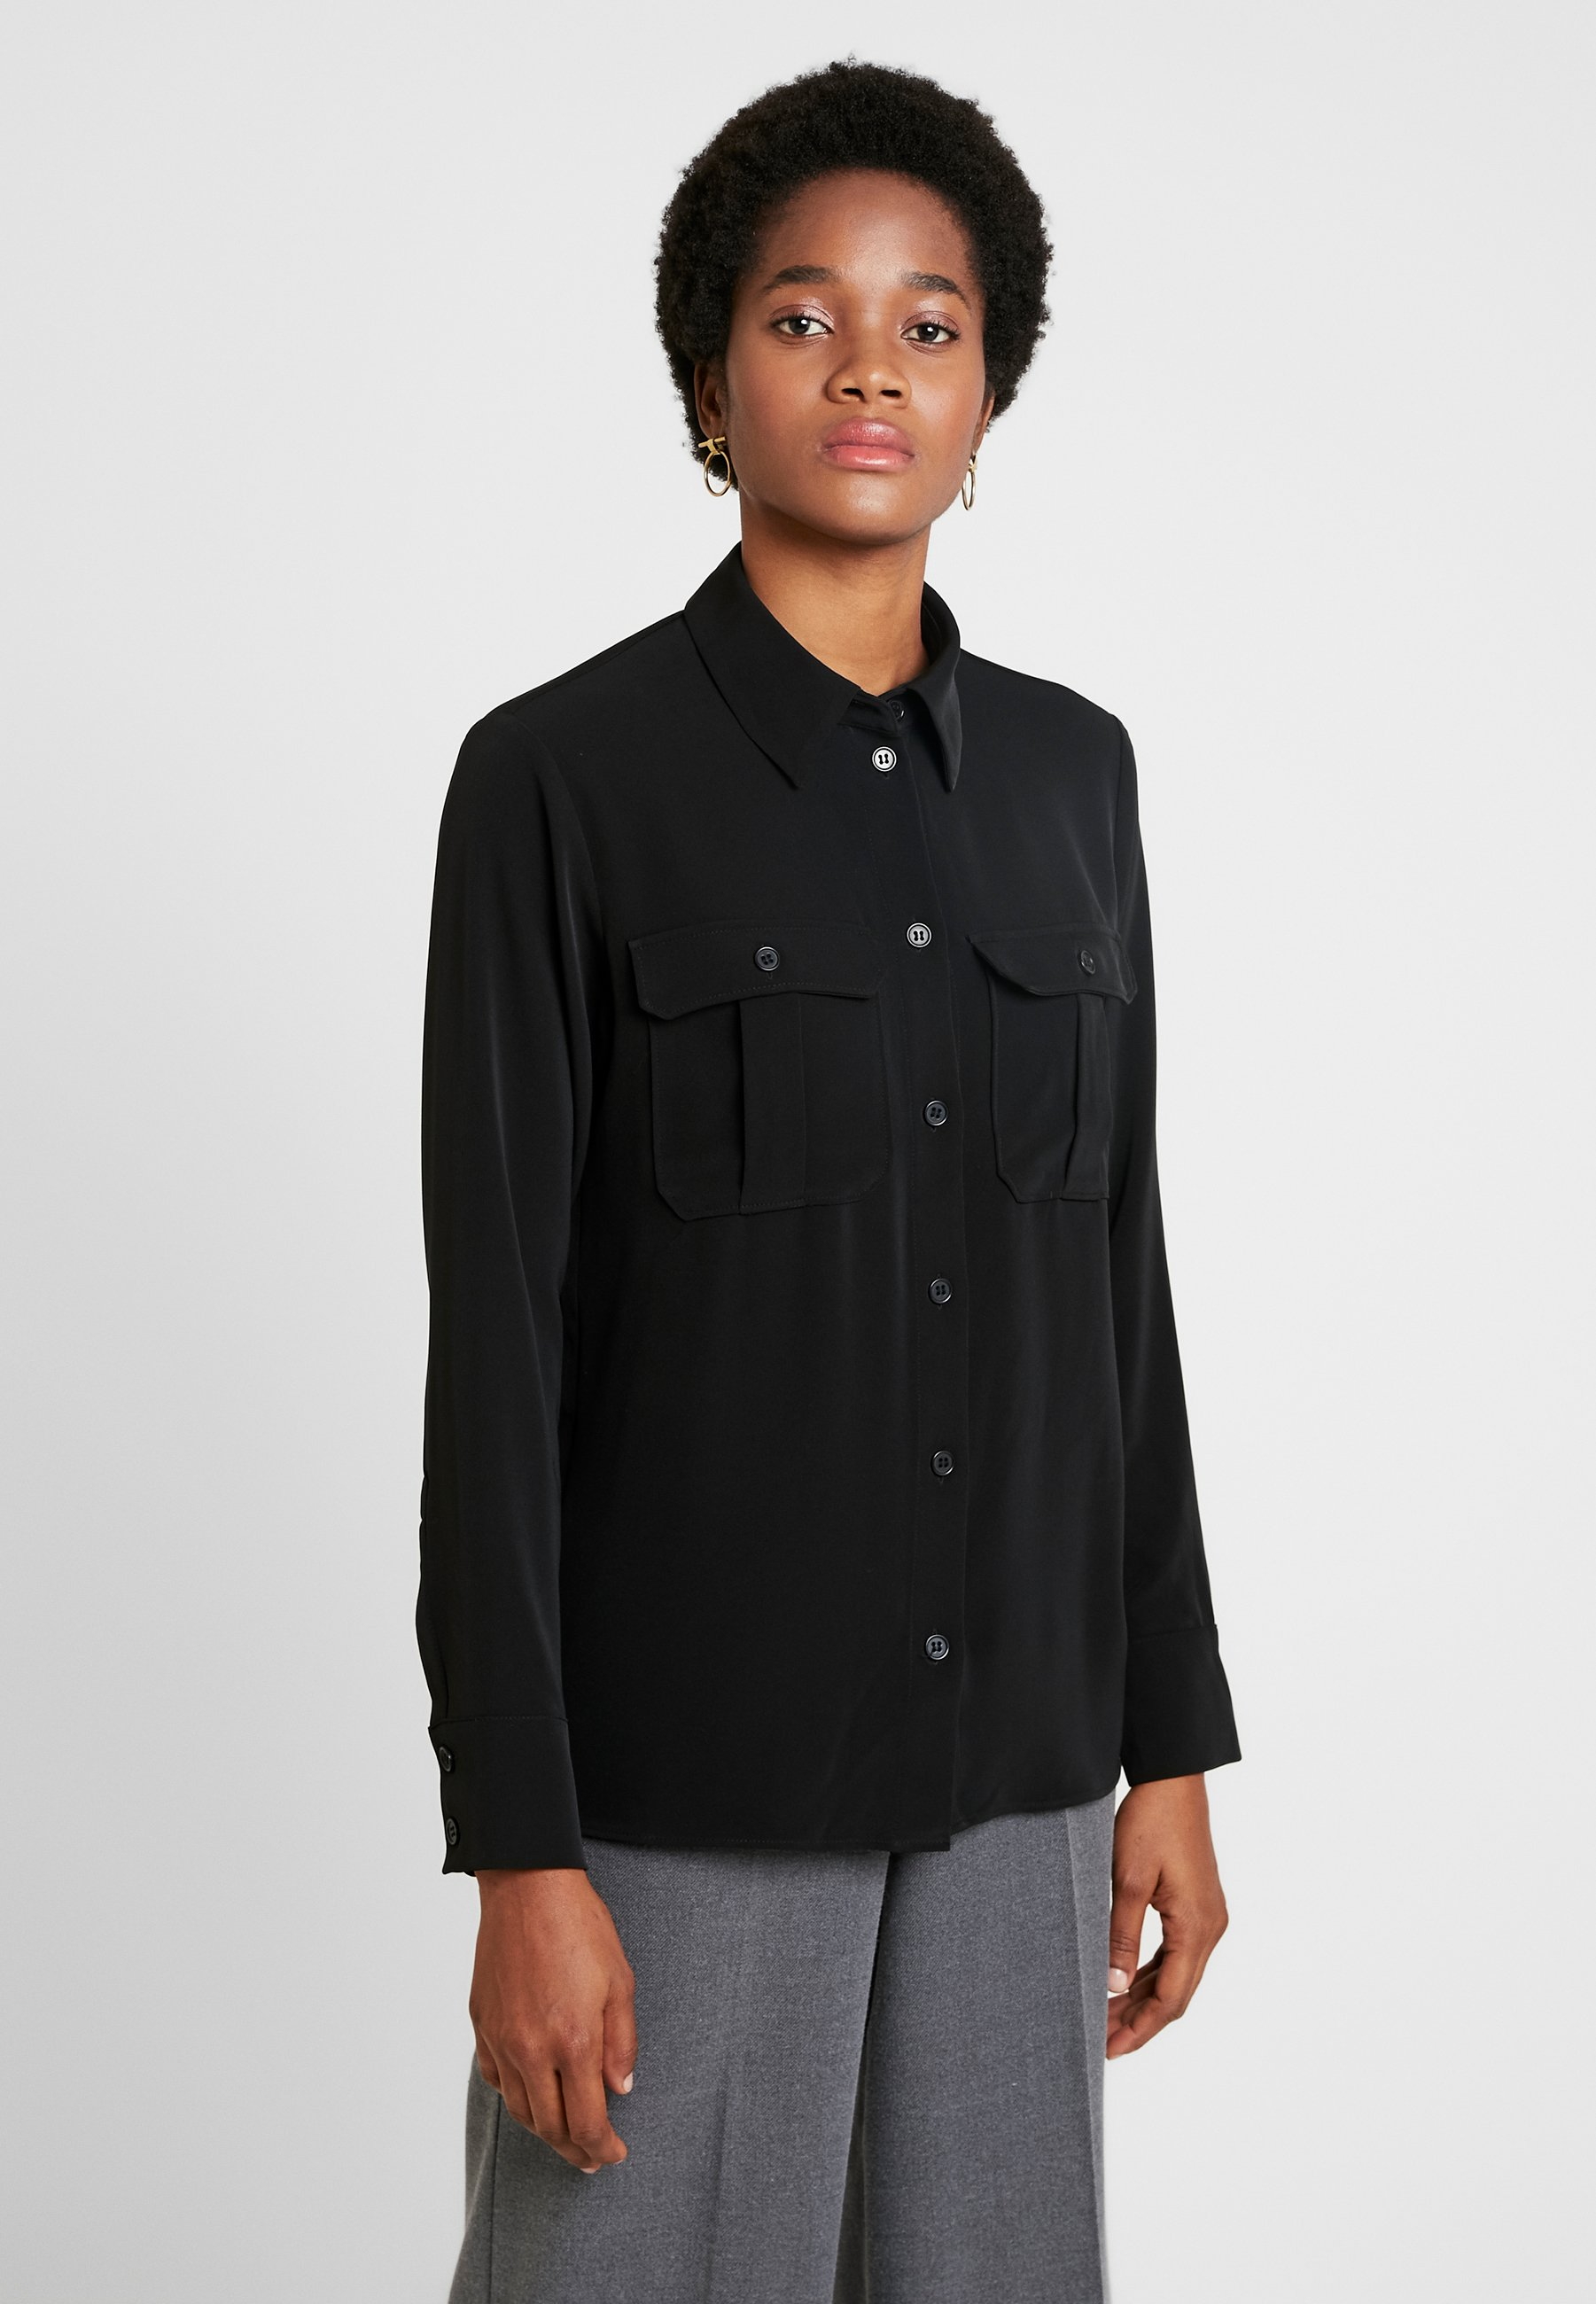 Weekday Black Camicia Camicia Camicia Weekday Black Weekday FcTKl1J